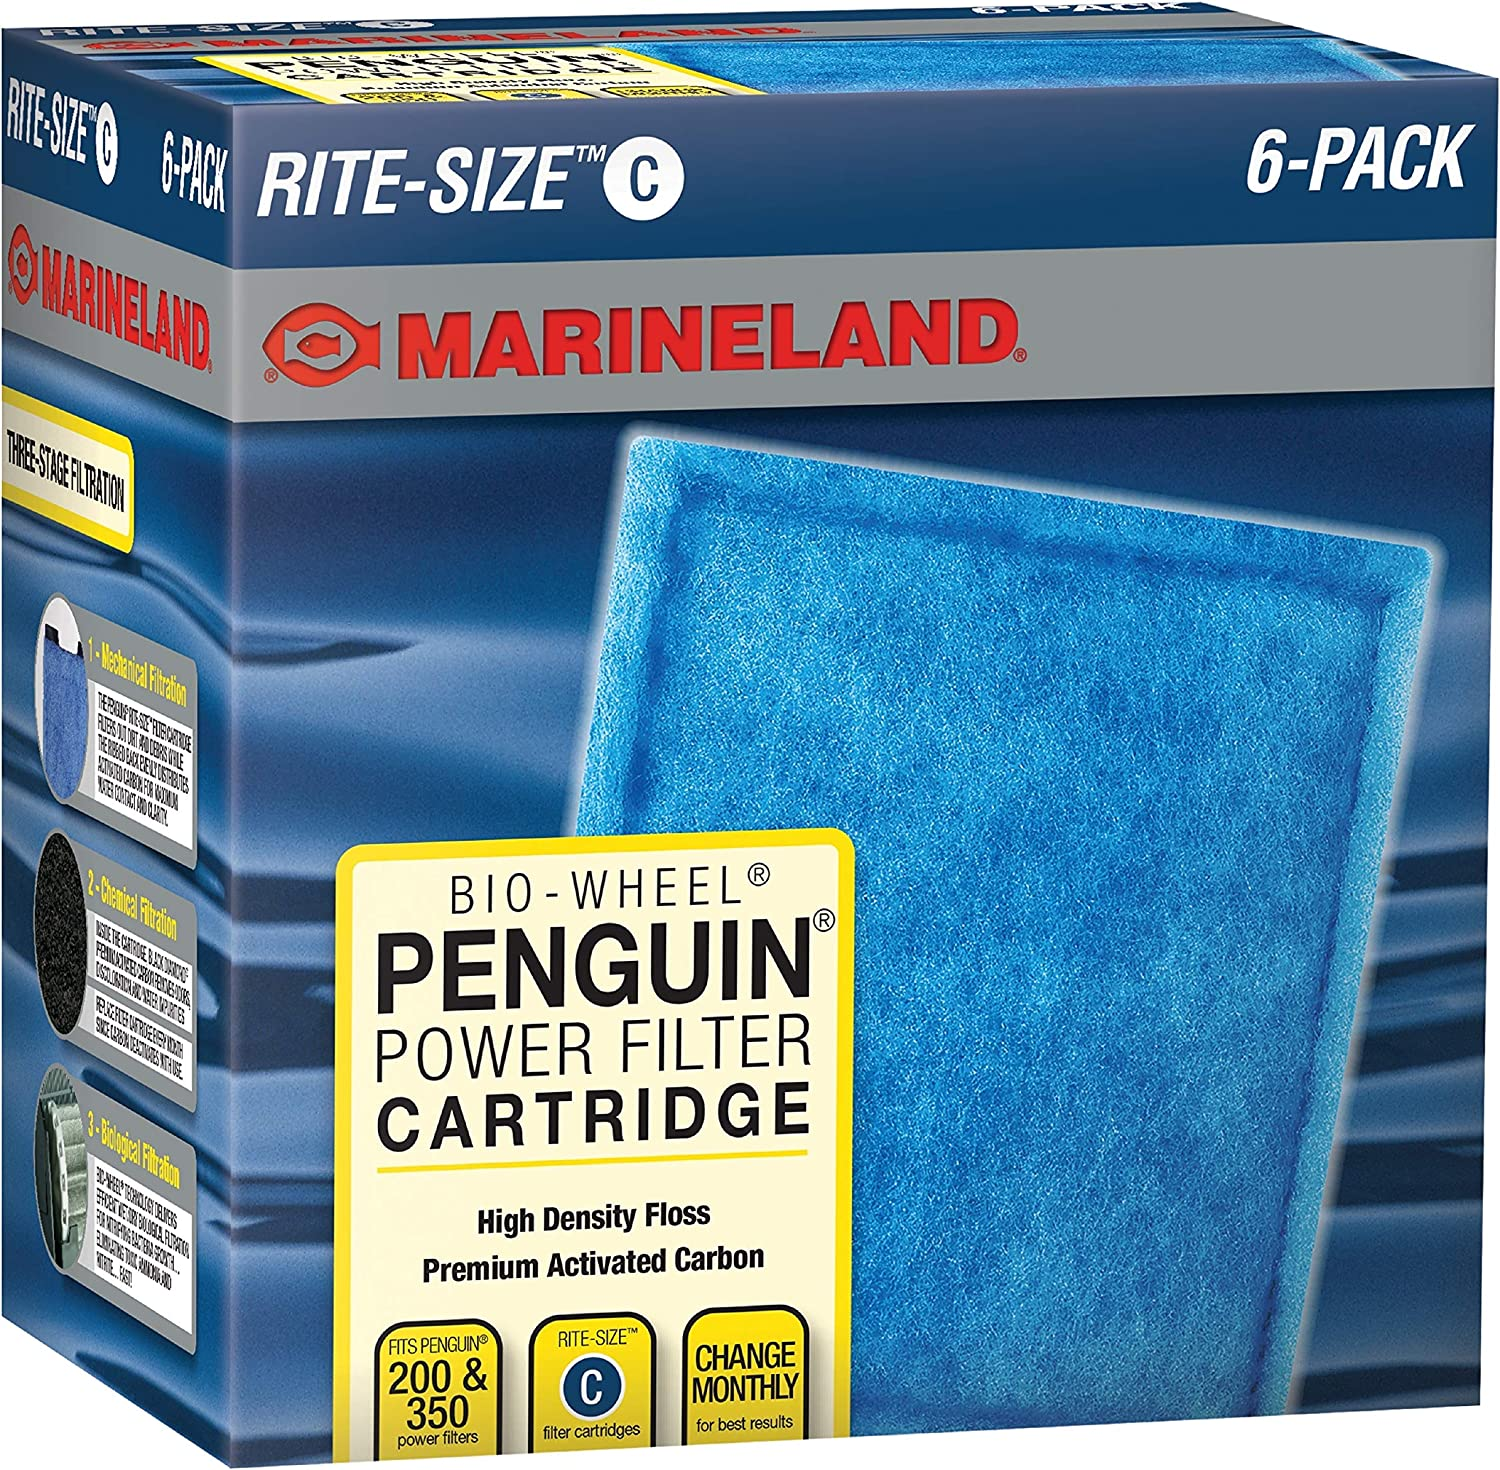 MarineLand Rite-Size Ready-to-Use Filter Cartridges